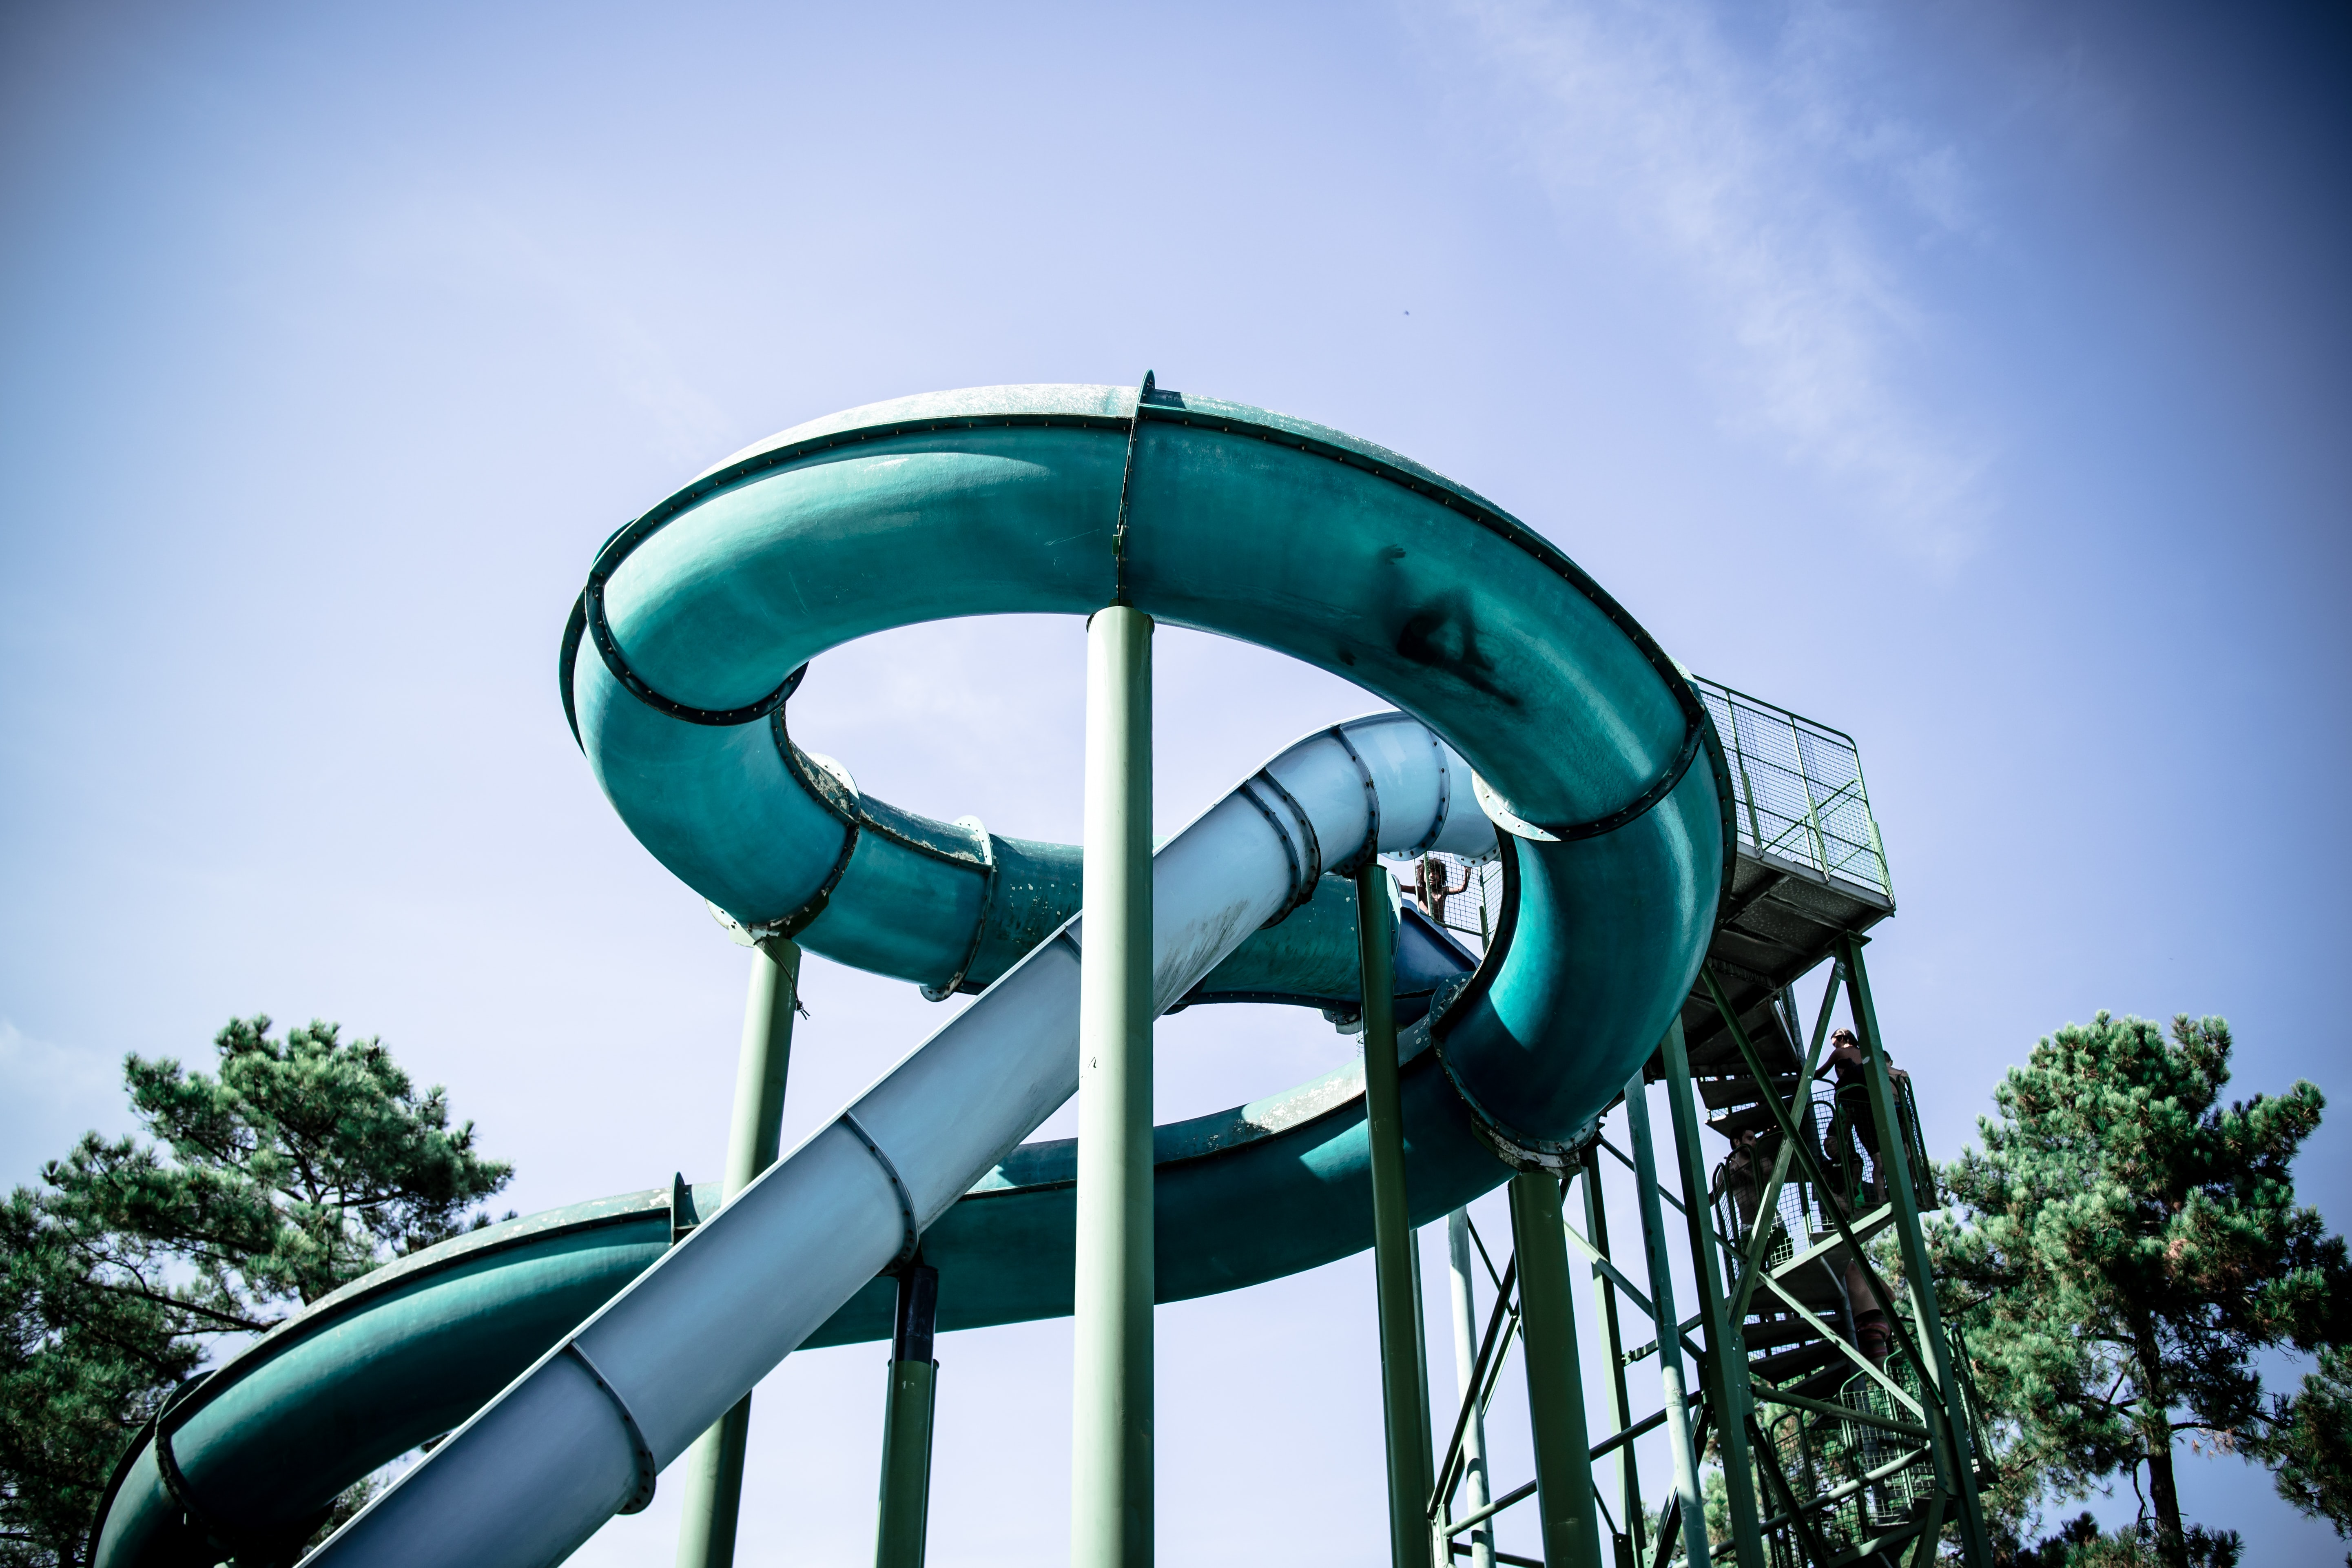 Looking up at a blue and teal tube water slide in Labenne